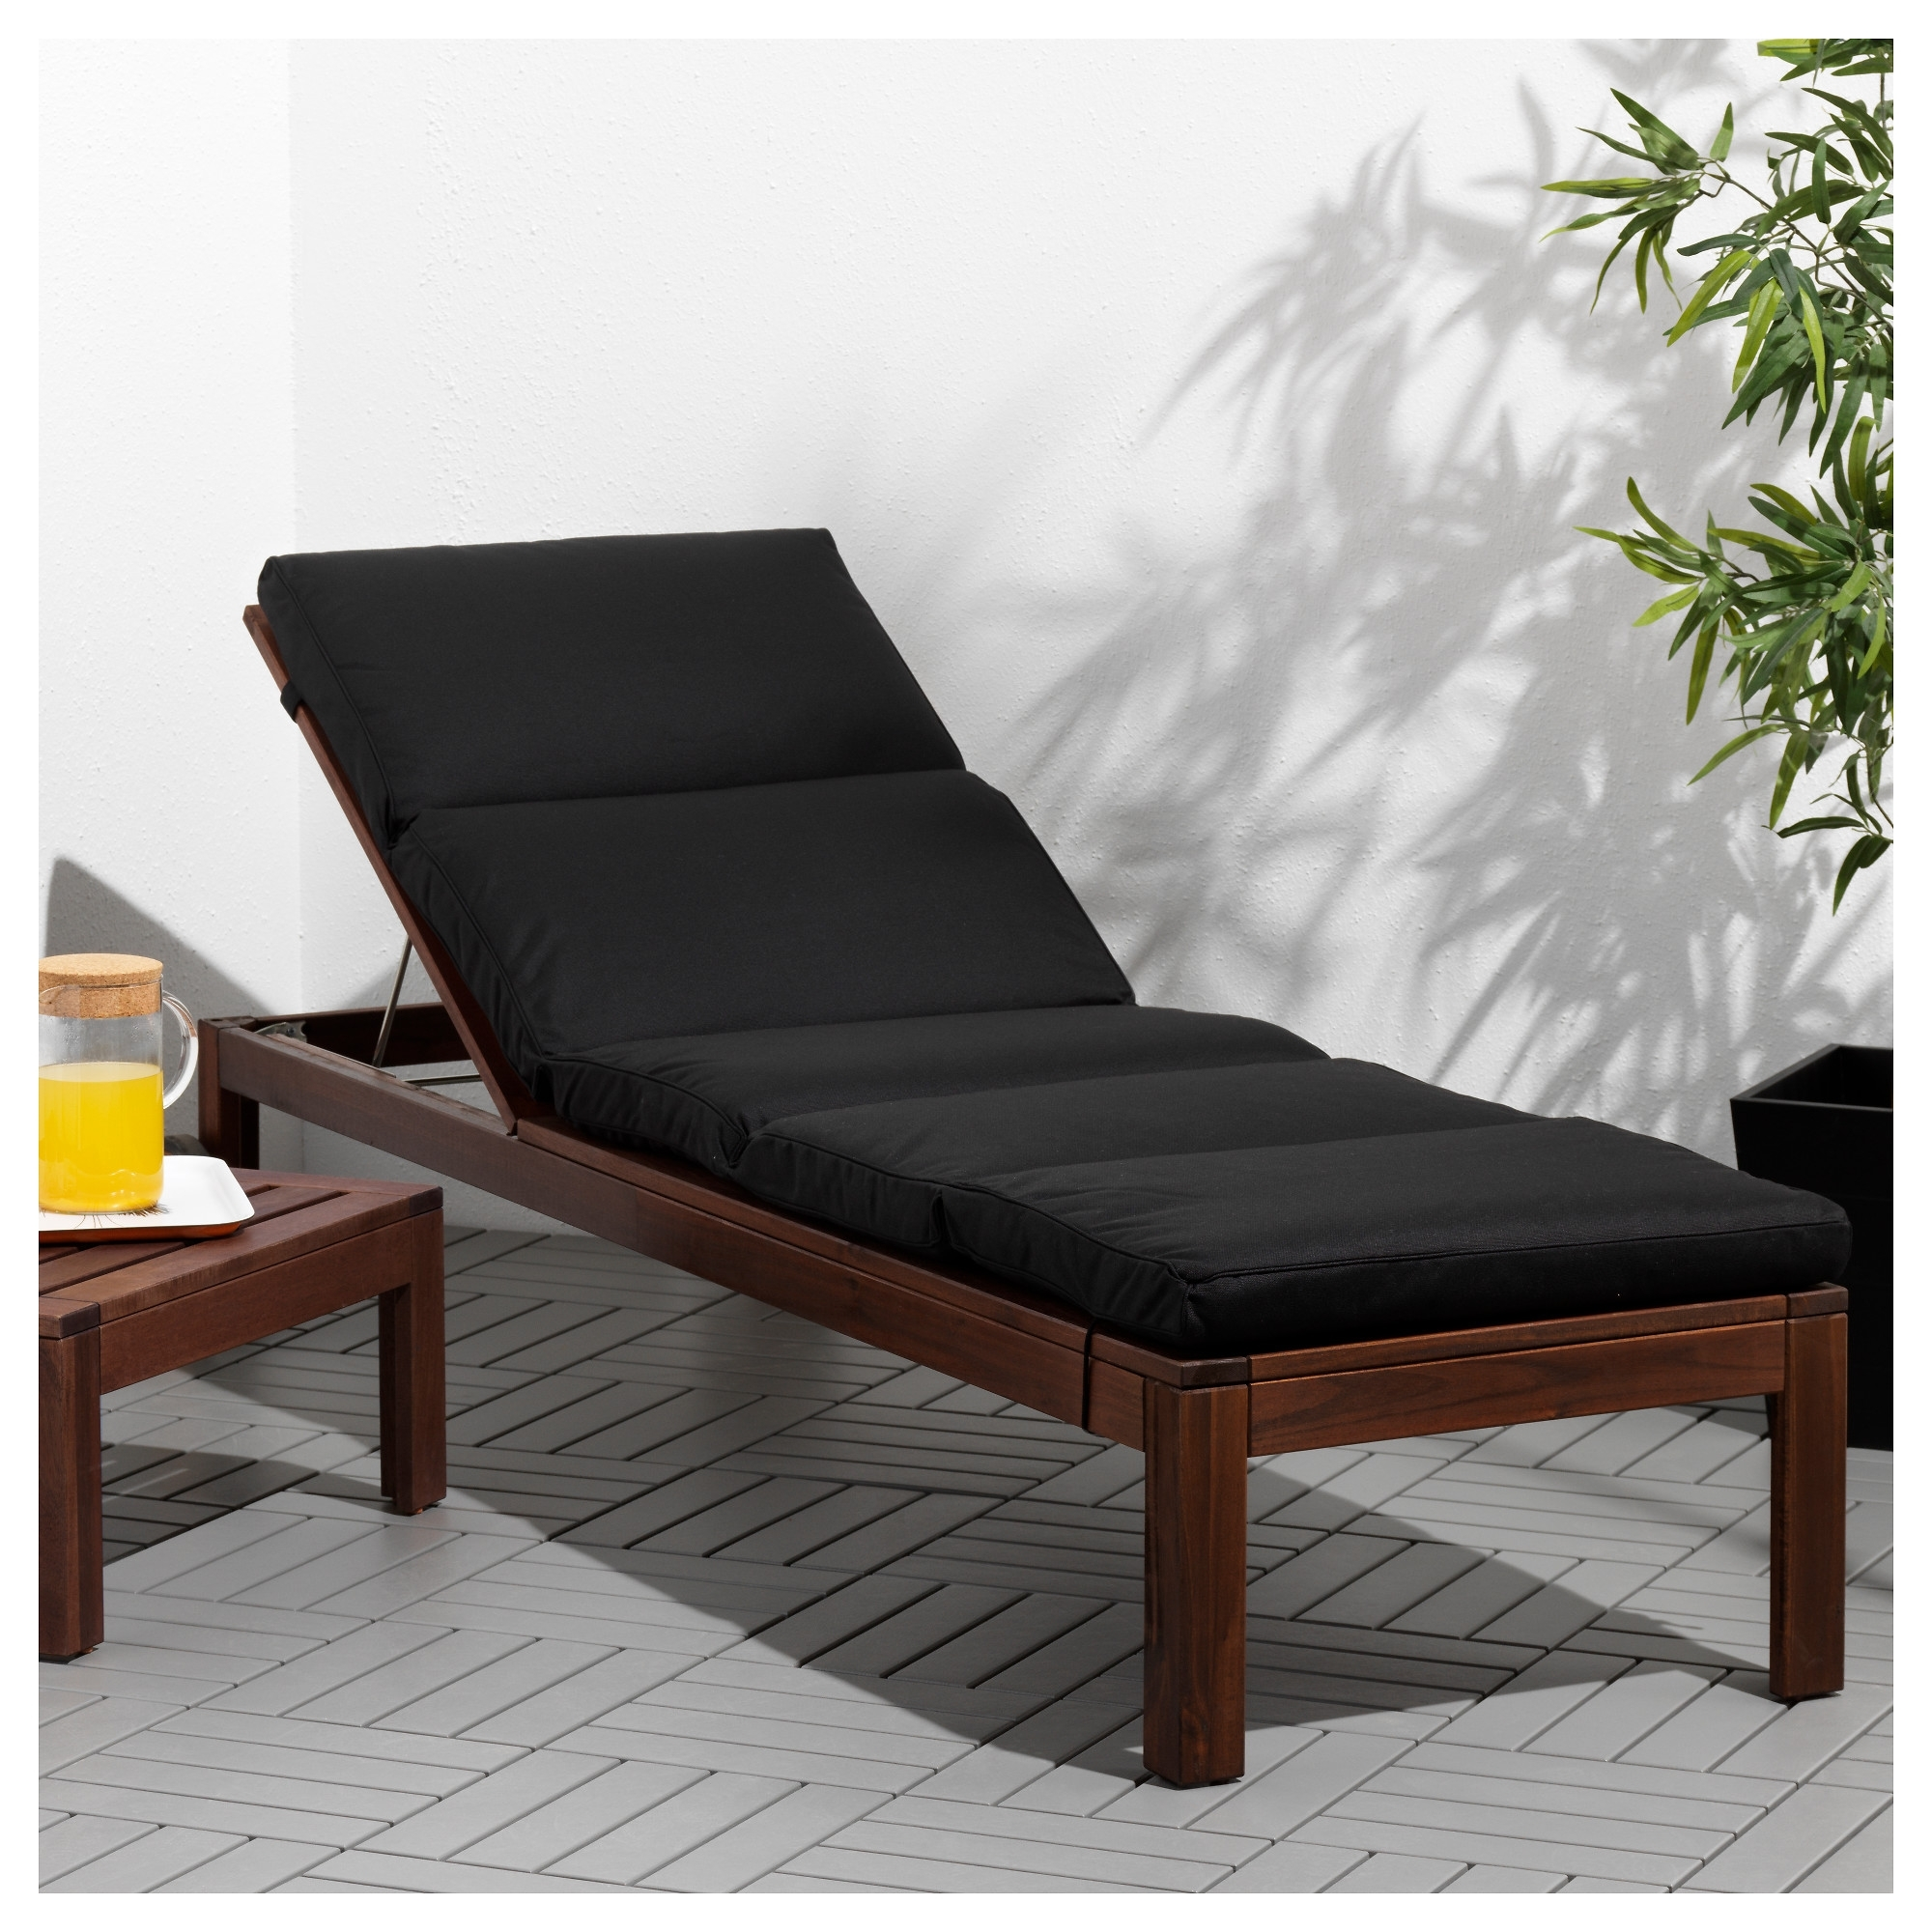 webbed chaise lounge chairs chair graphic design 2019 best of web lawn